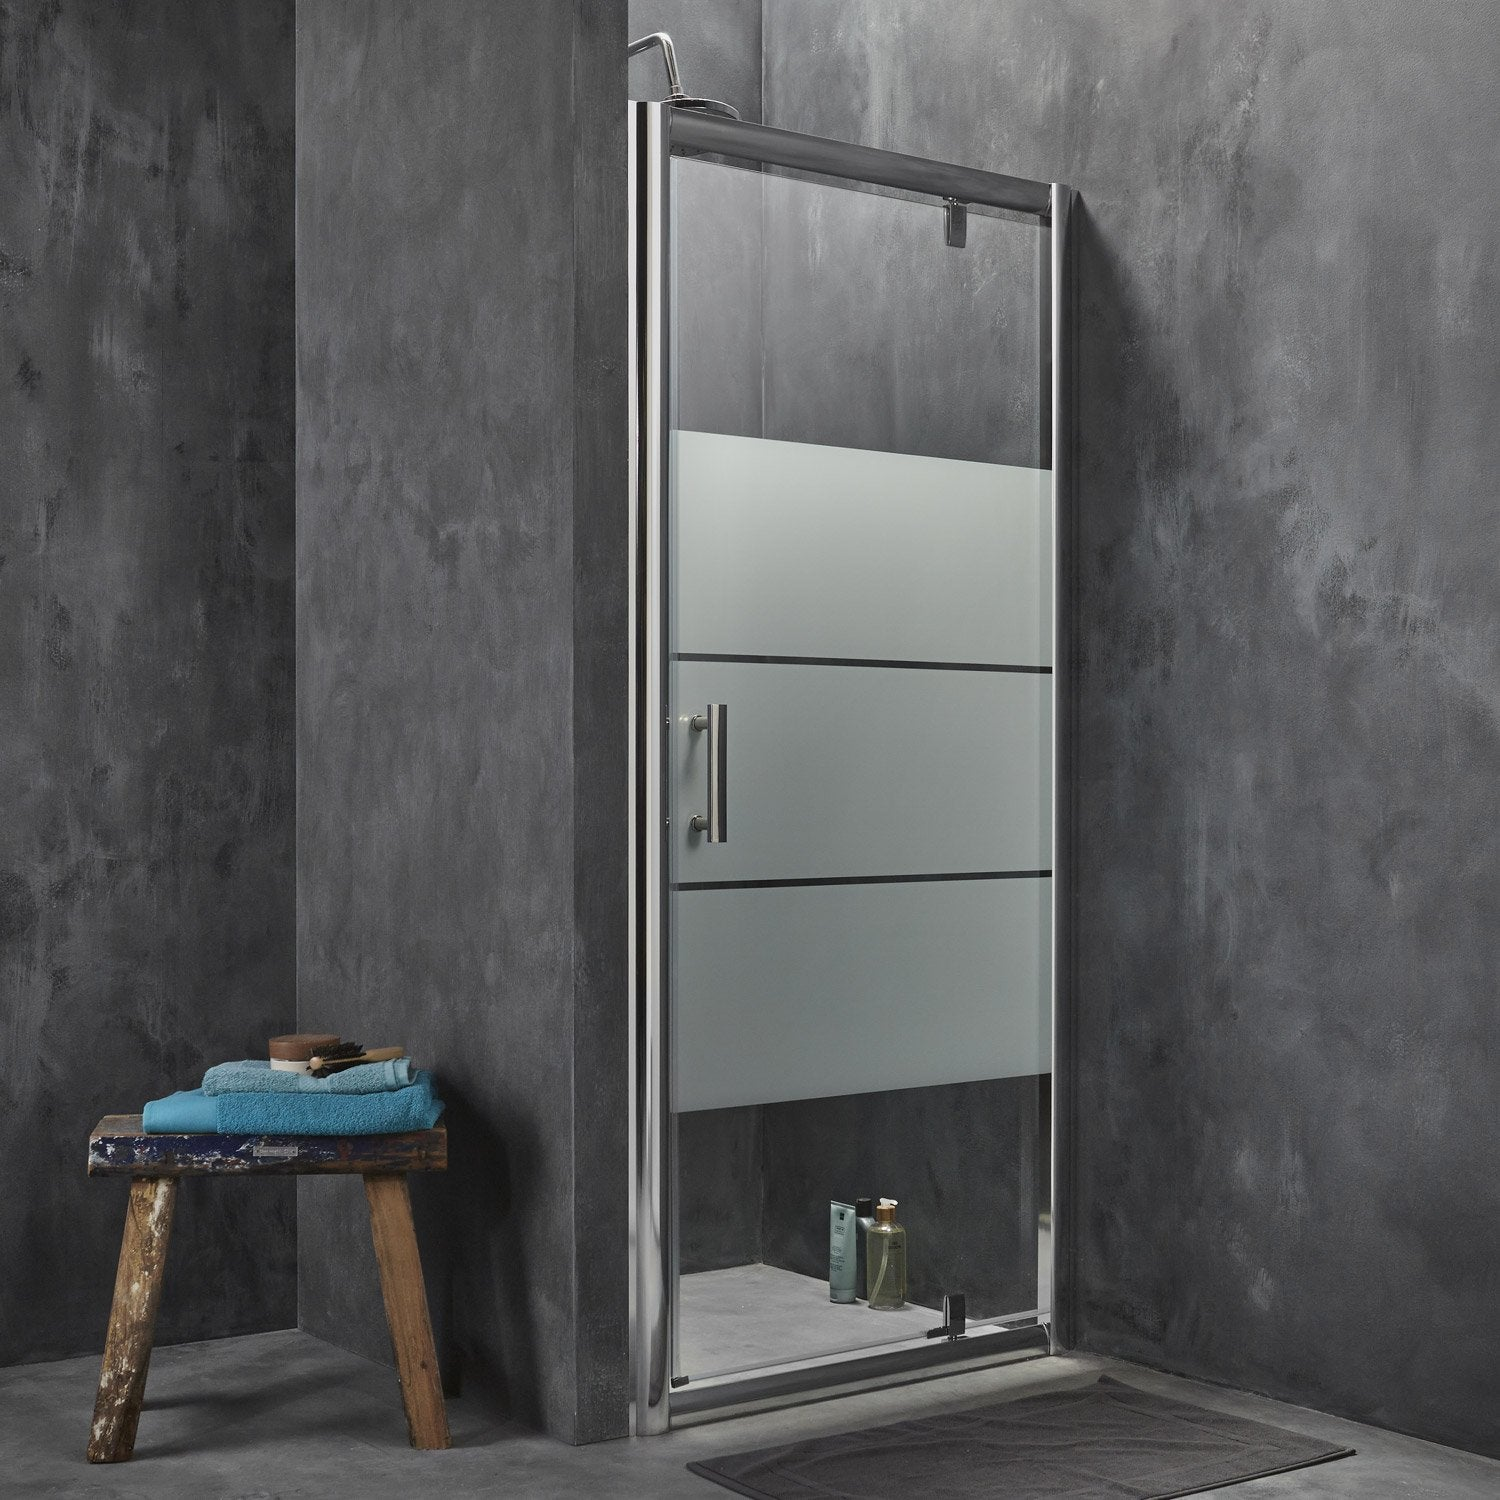 Porte de douche pivotante optima2 leroy merlin for Porte de douche leroy merlin